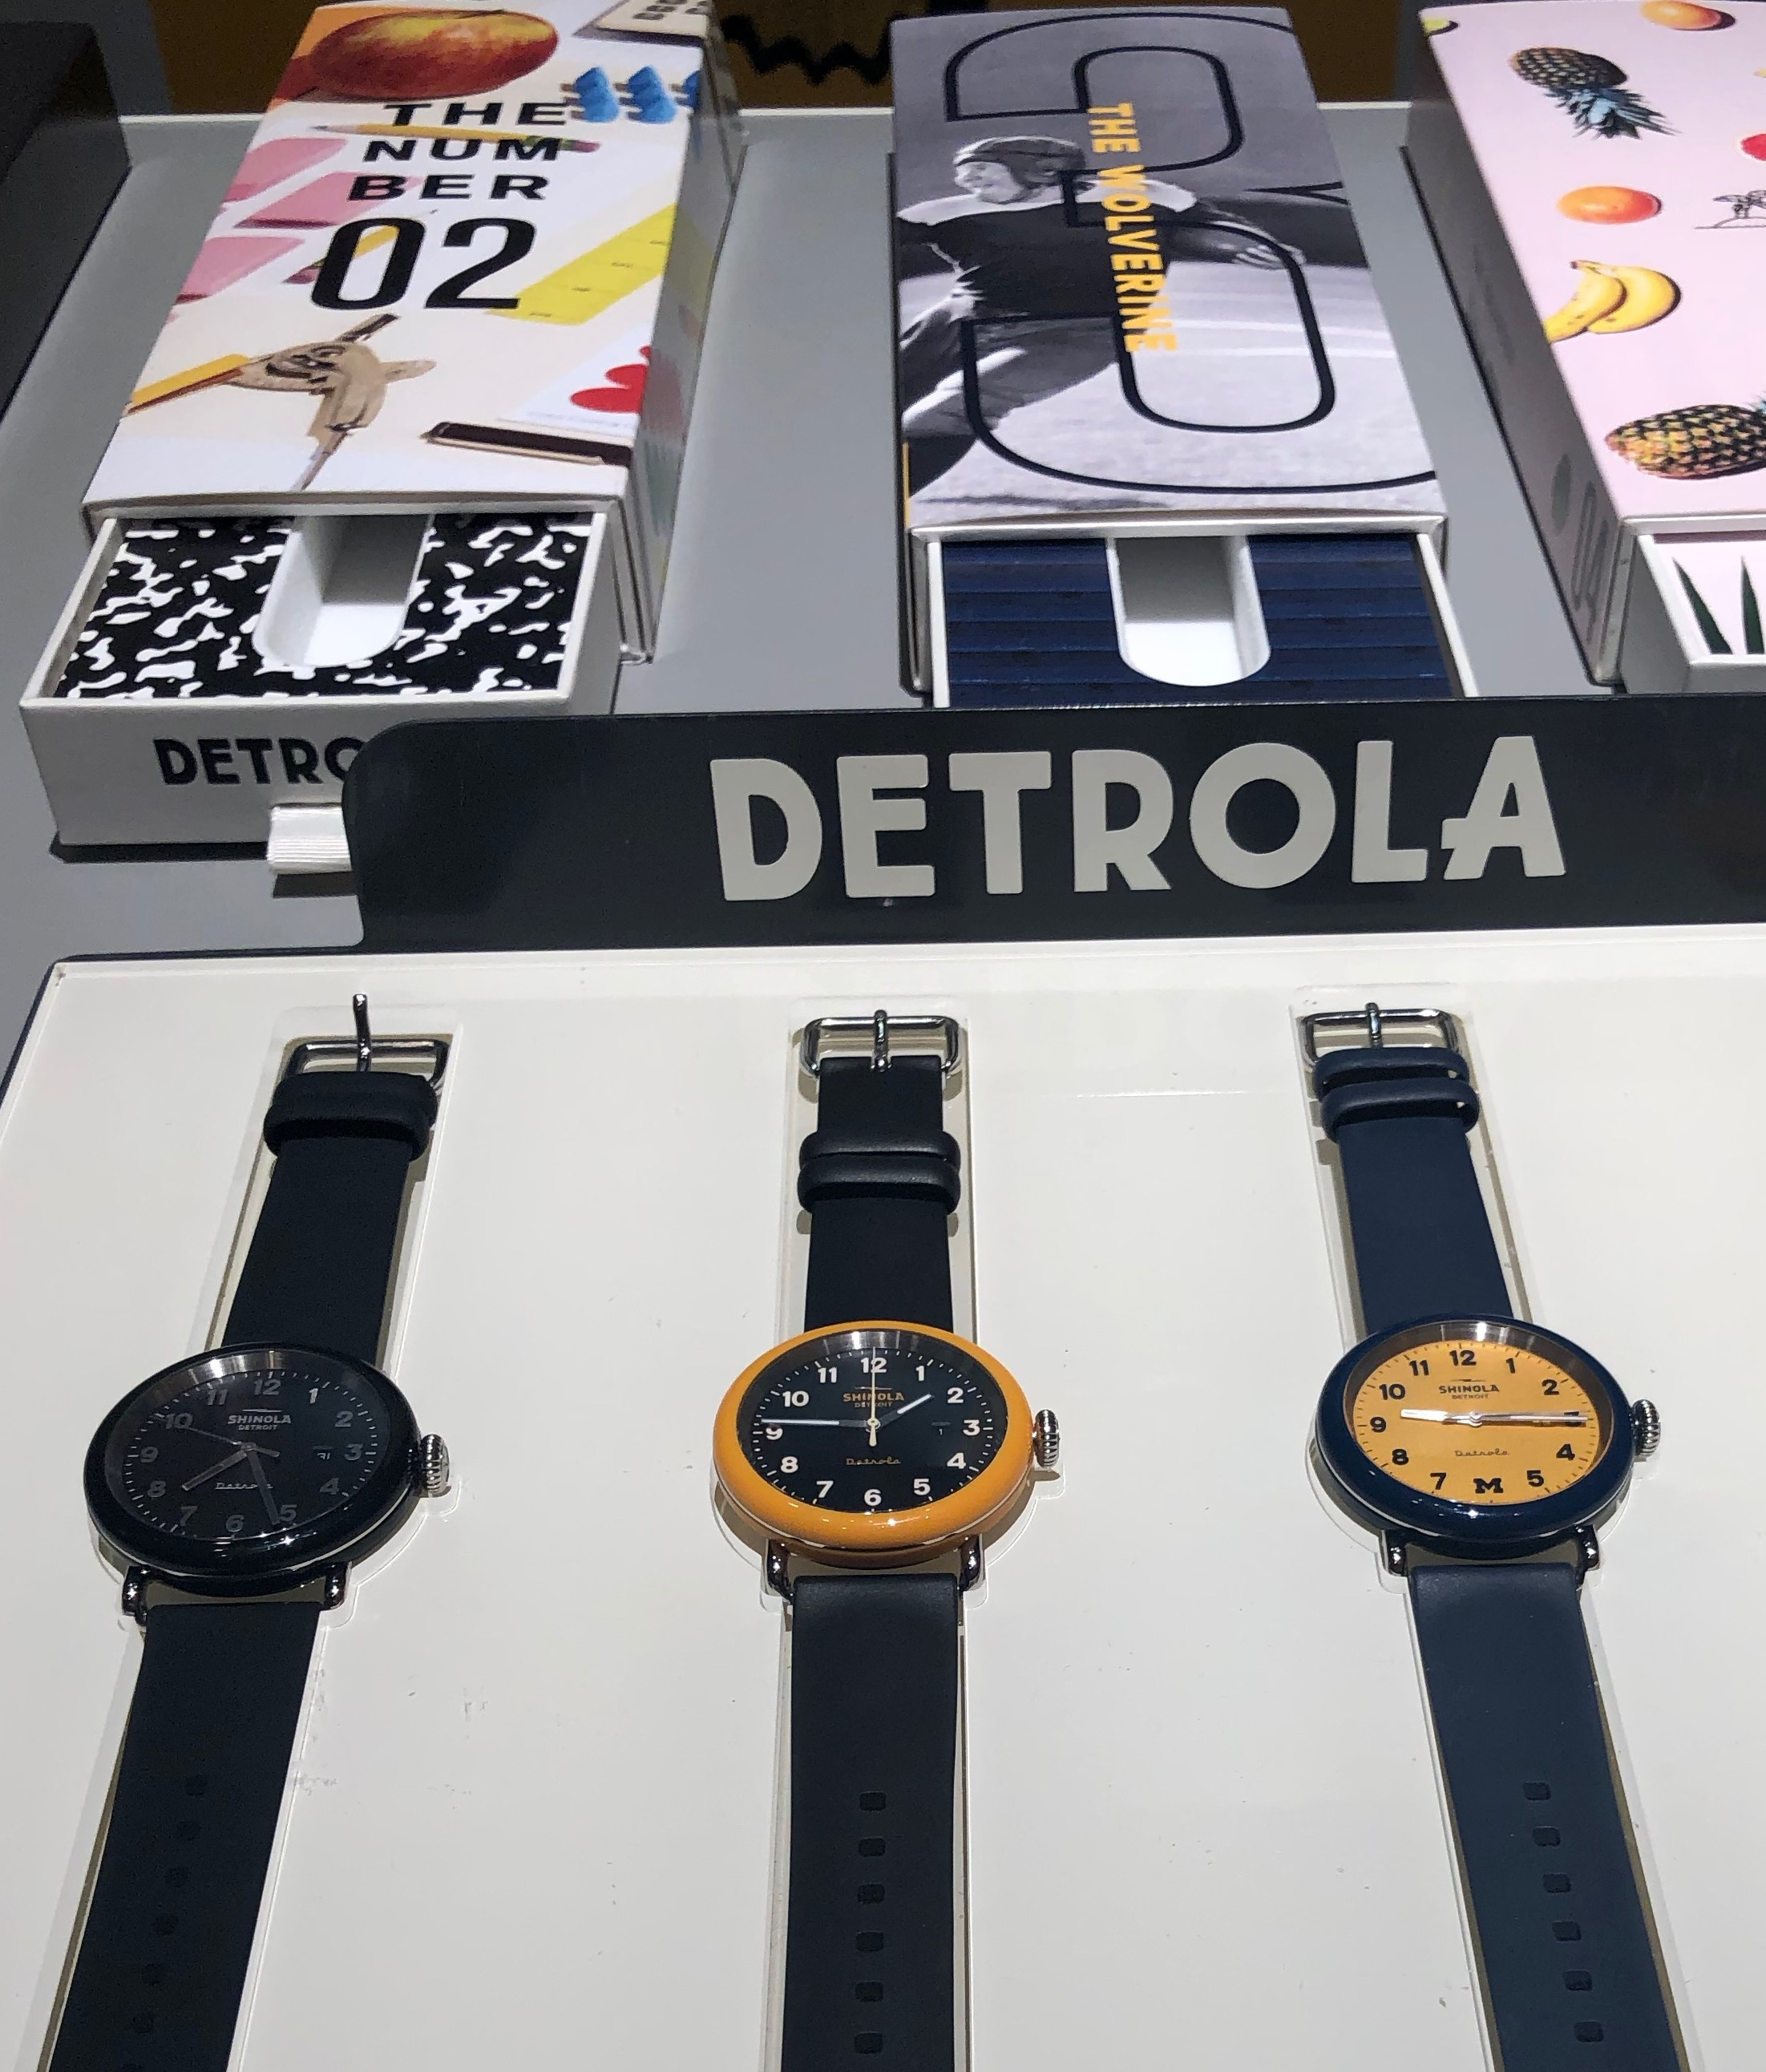 Detrola by Shinola